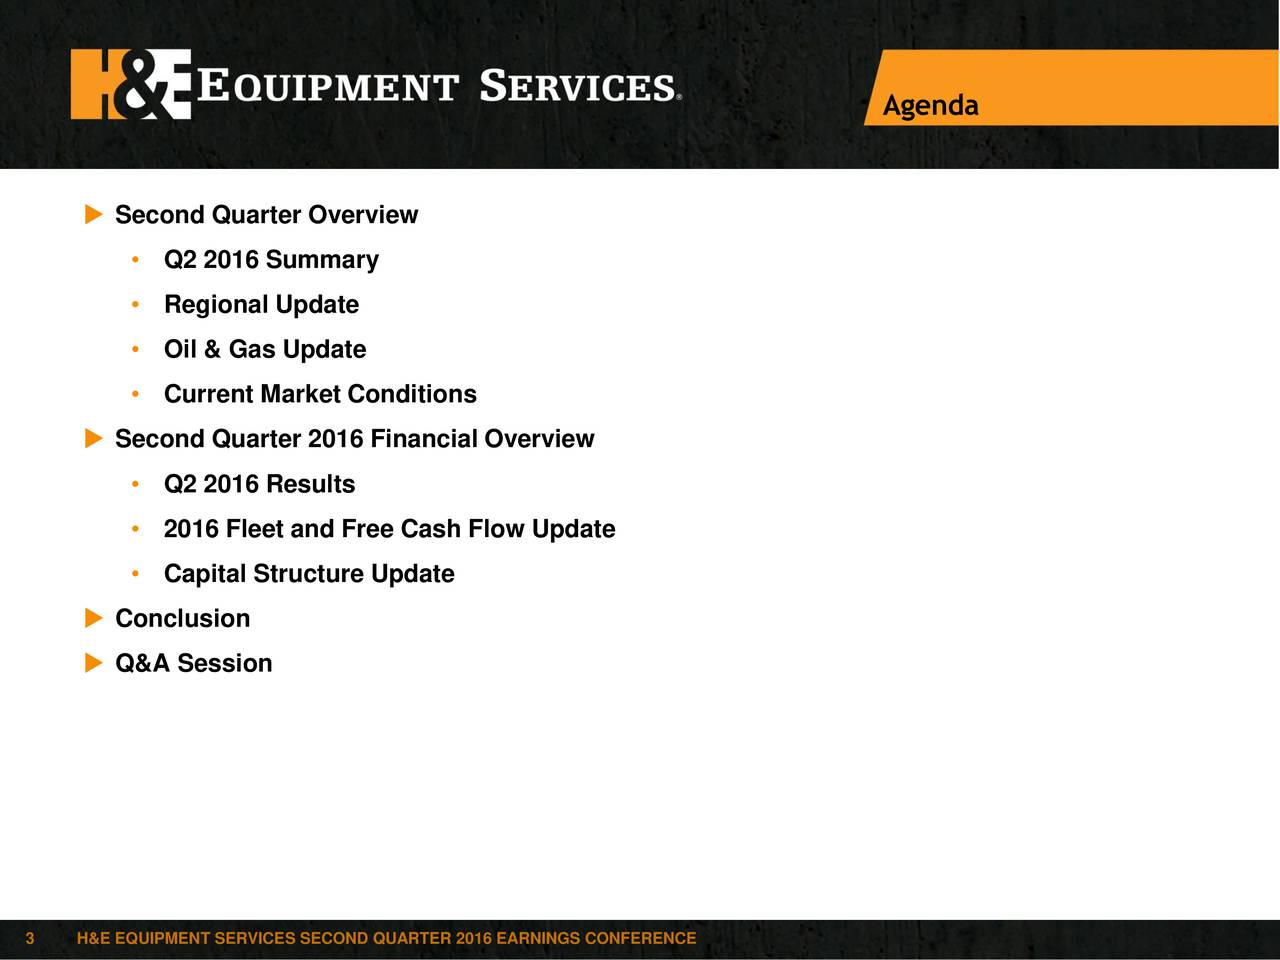 Second Quarter Overview Q2 2016 Summary Regional Update Oil & Gas Update Current Market Conditions Second Quarter 2016 Financial Overview Q2 2016 Results 2016 Fleet and Free Cash Flow Update Capital Structure Update Conclusion Q&A Session 3 H&E EQUIPMENT SERVICES SECOND QUARTER 2016 EARNINGS CONFERENCE